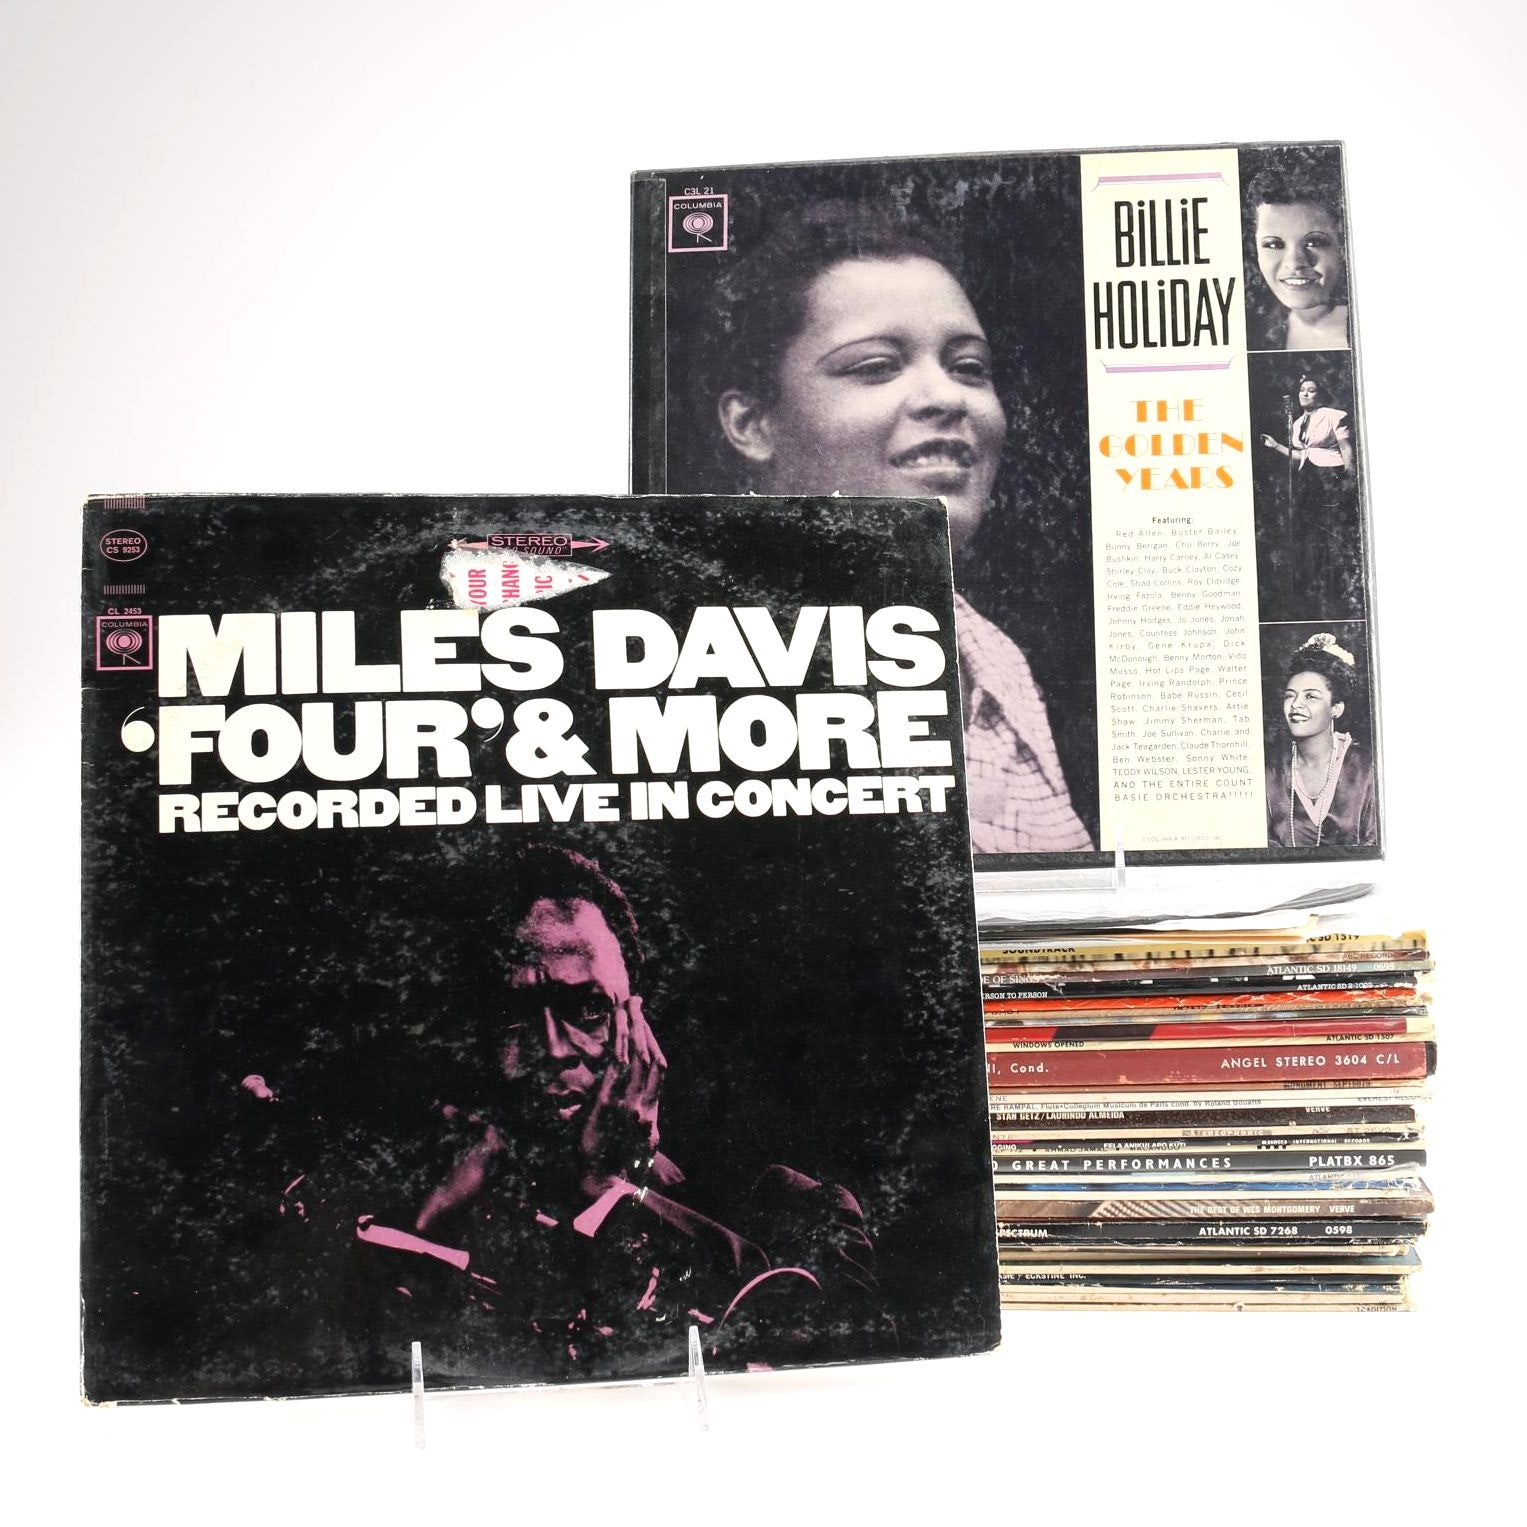 Miles Davis, Thelonious Monk and Other Jazz, Funk LPs